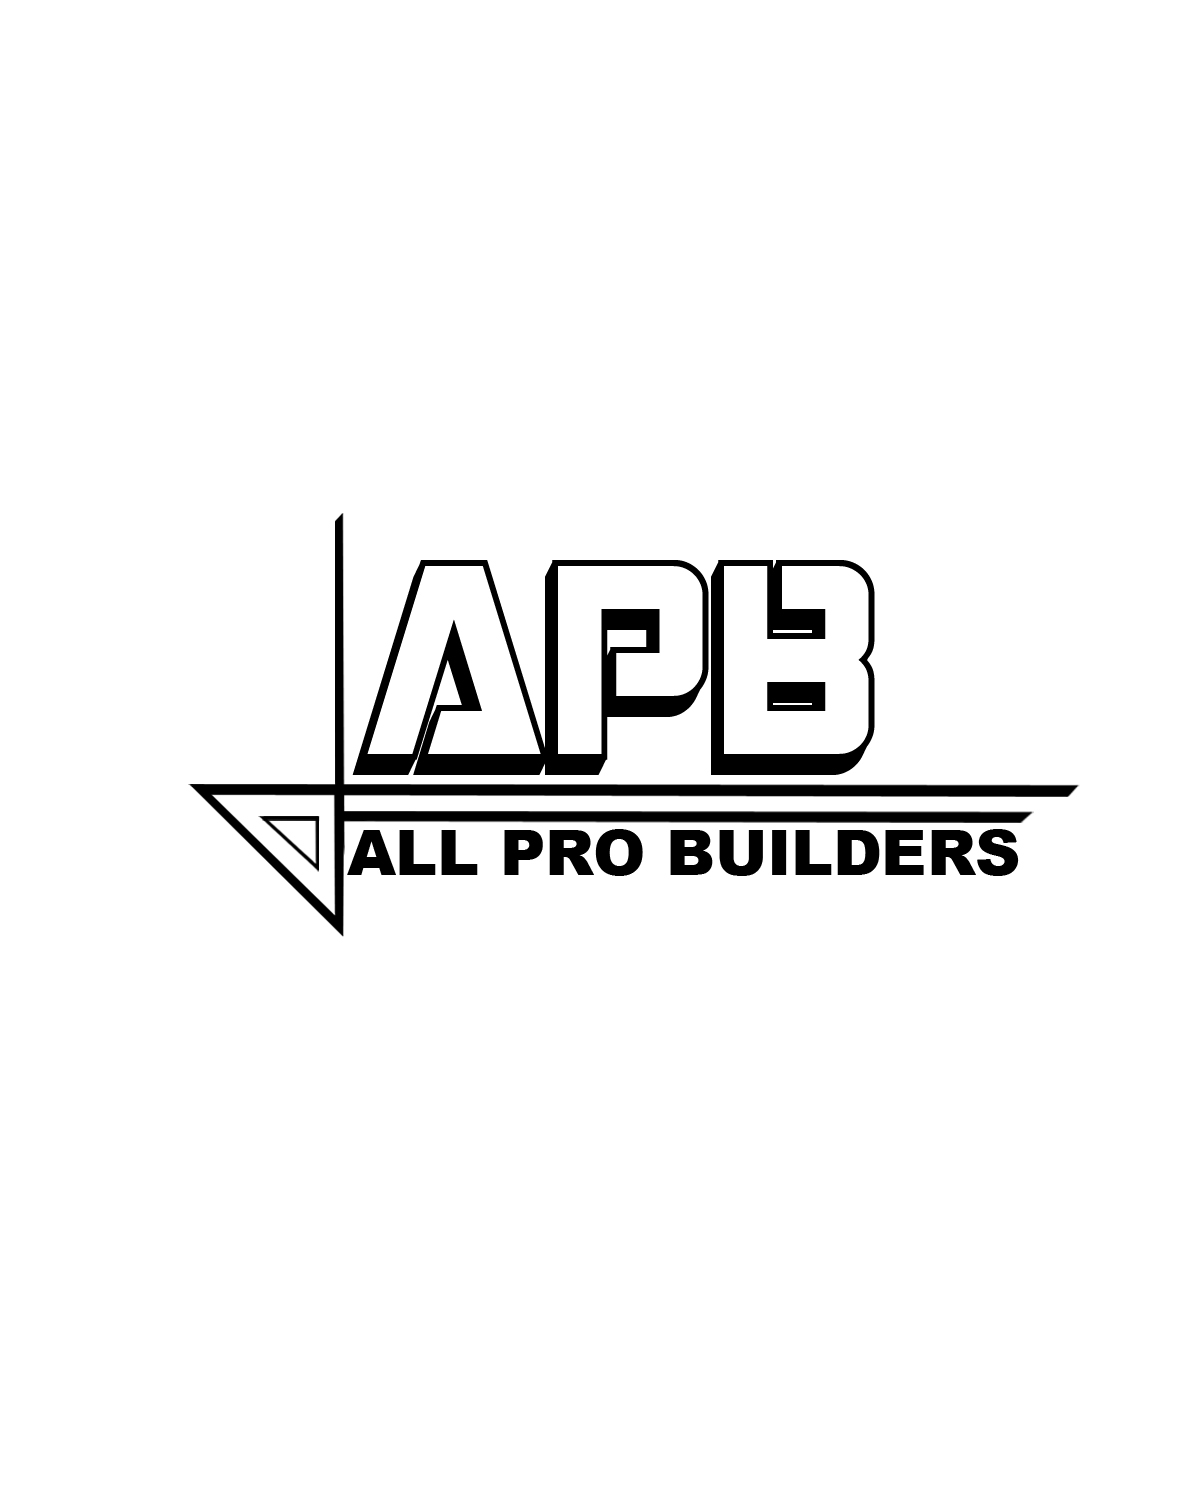 All Pro Builders LLC primary image